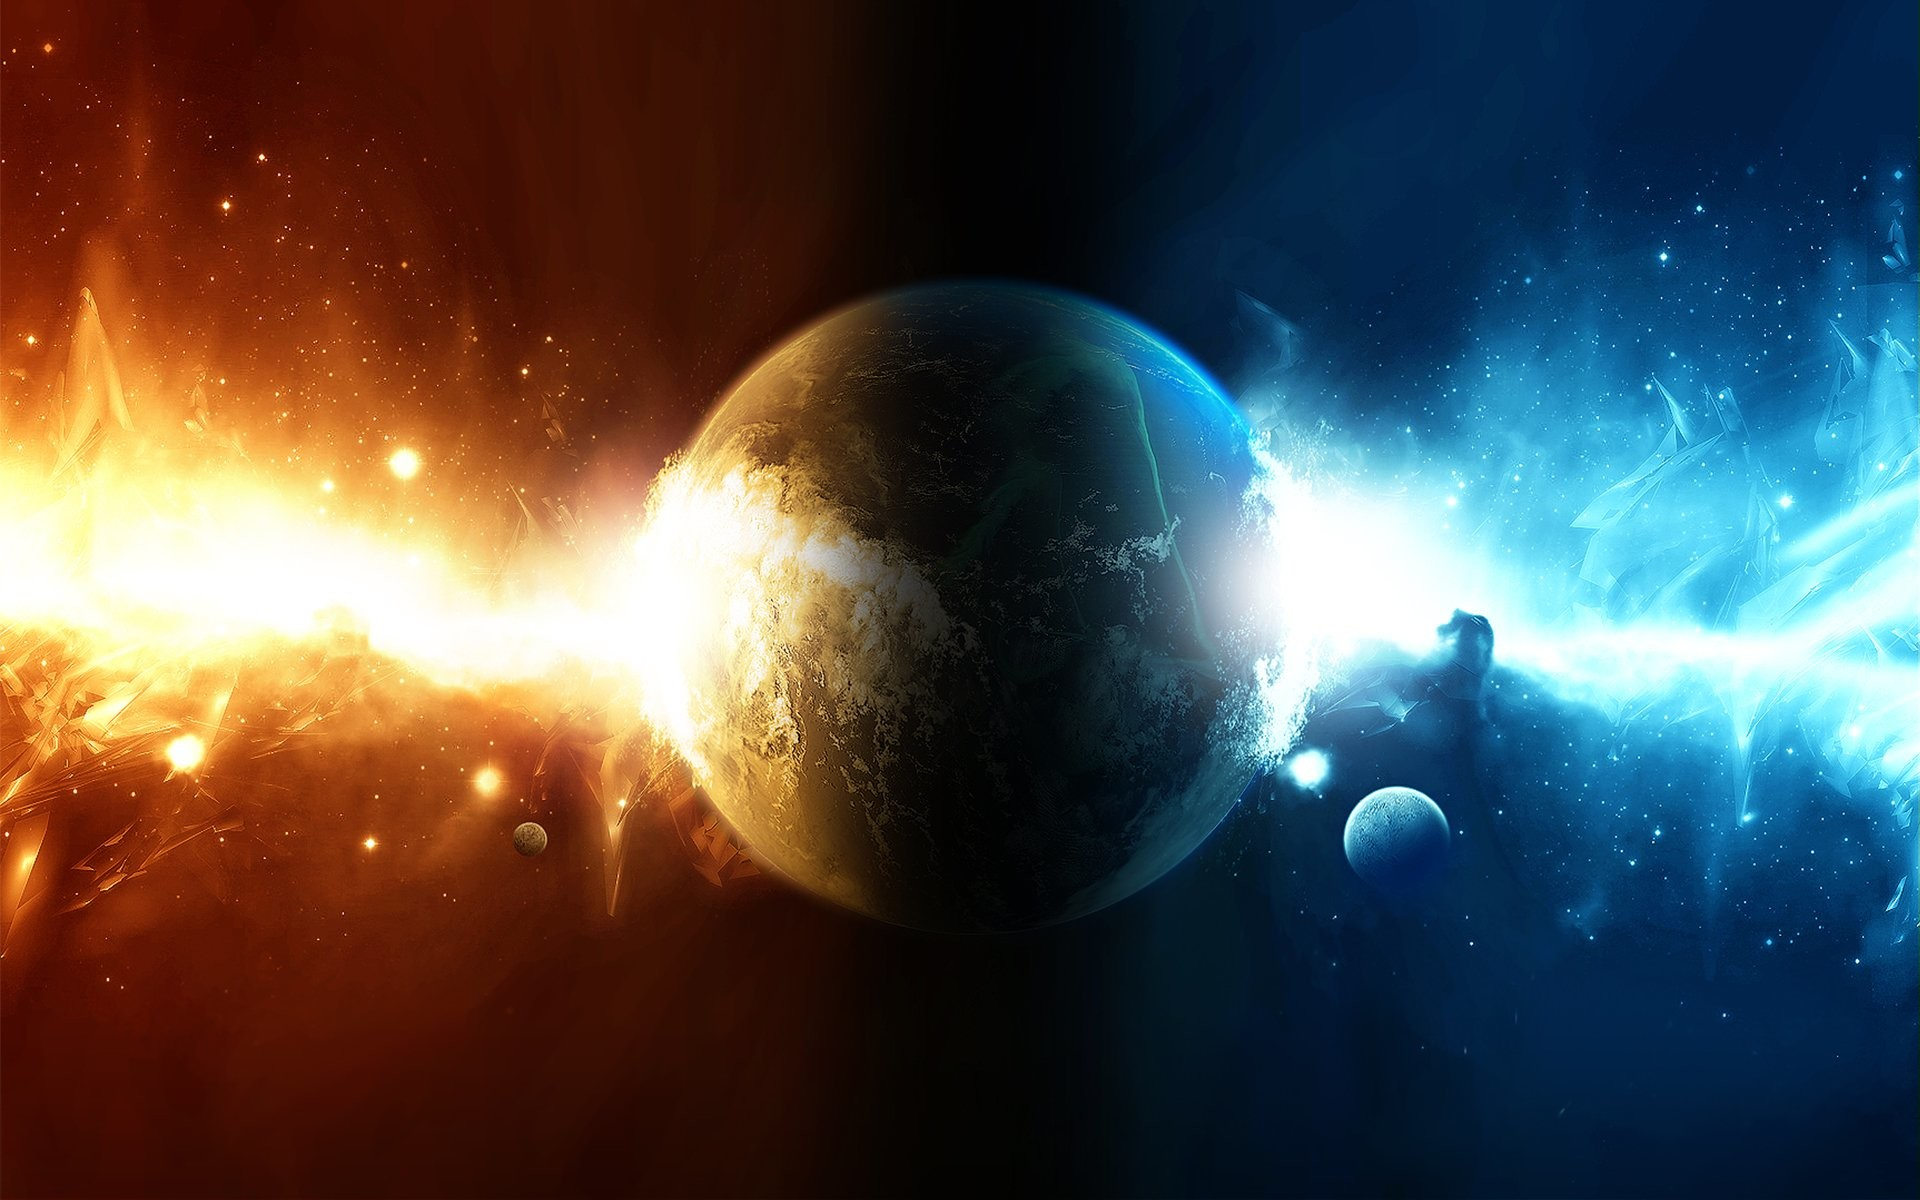 Explosions In Space Wallpaper 484415